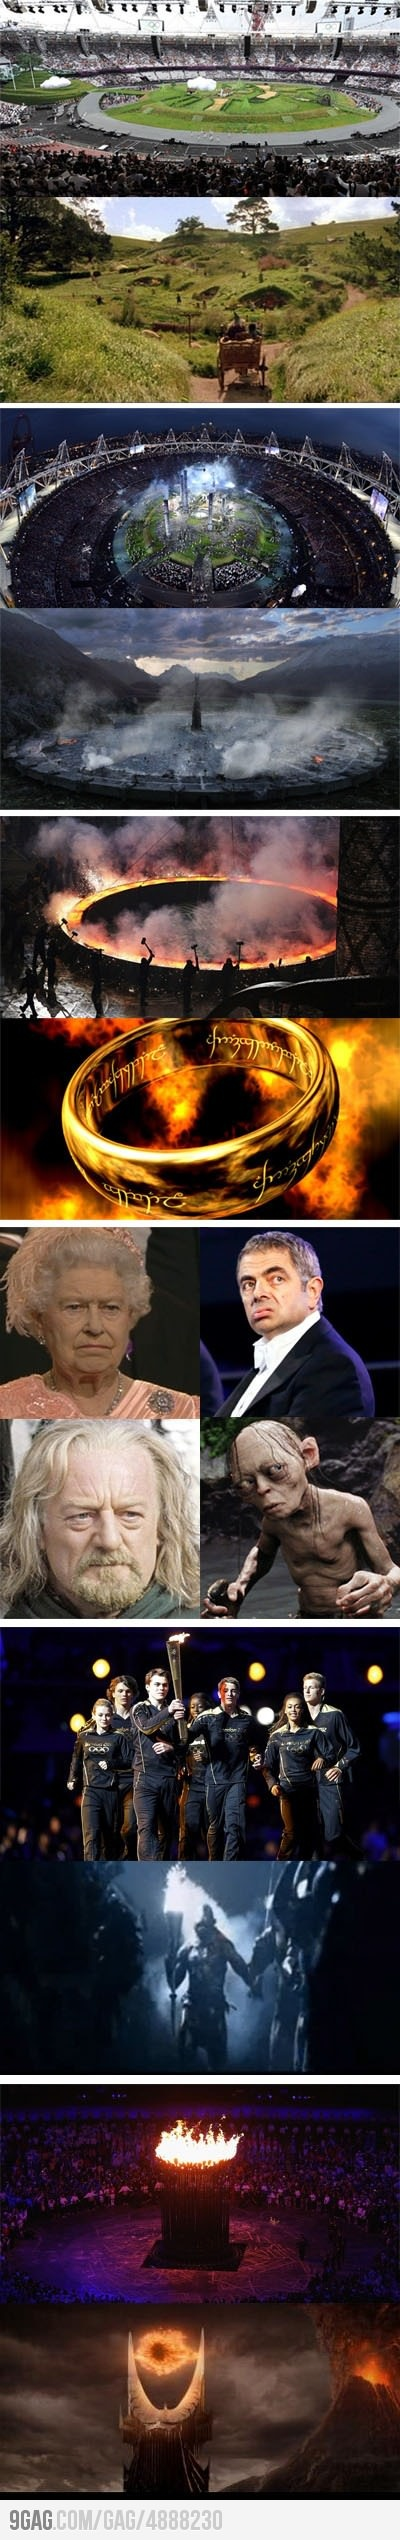 "Olympics Opening Ceremony = Lord of the Rings...OMG I'm glad I'm not the only one who thought ""One Ring to rule them all, One Ring to find them, One Ring to bring them in the darkness and bind them..."""